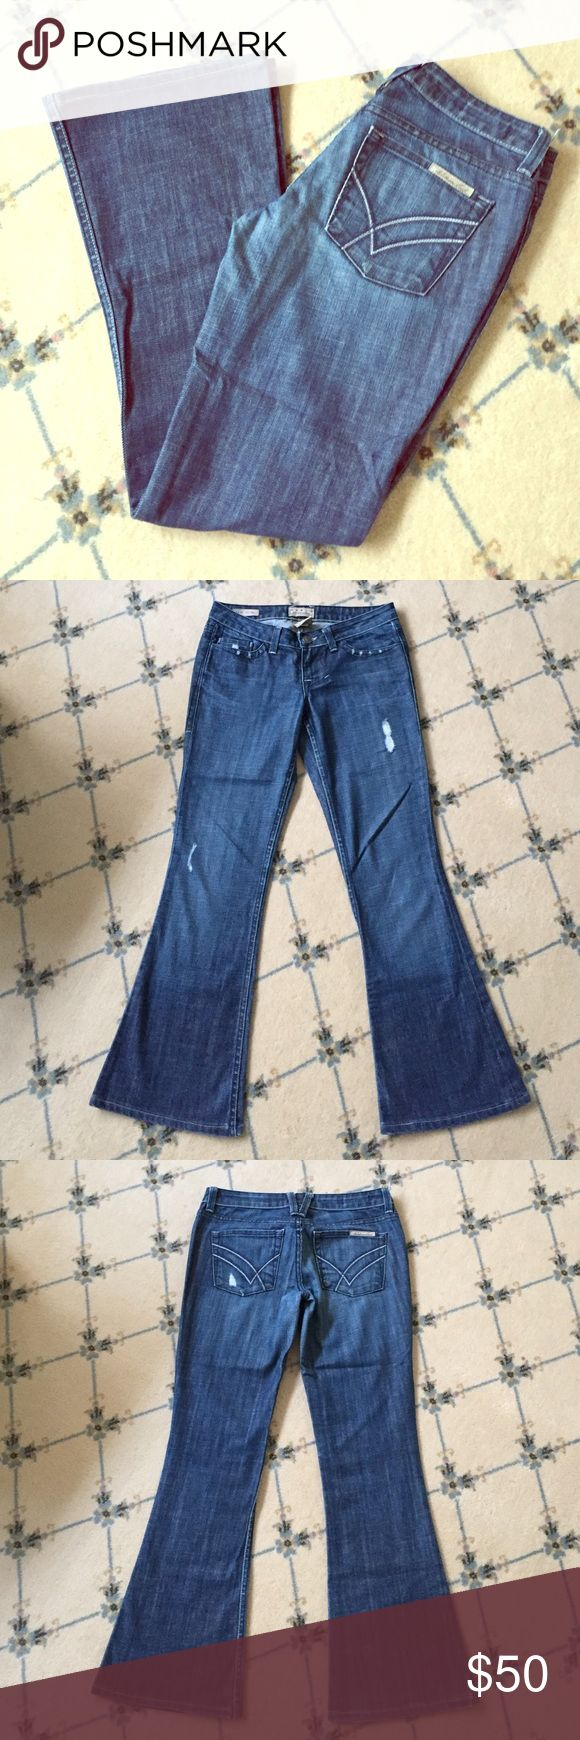 "William Rast Daisy Super Flare Jeans - Size 25 Excellent condition! William Rast Daisy Super Flare cut jeans; inseam approx. 30""; waist approx. 32.5""; size 25 William Rast Jeans Flare & Wide Leg"